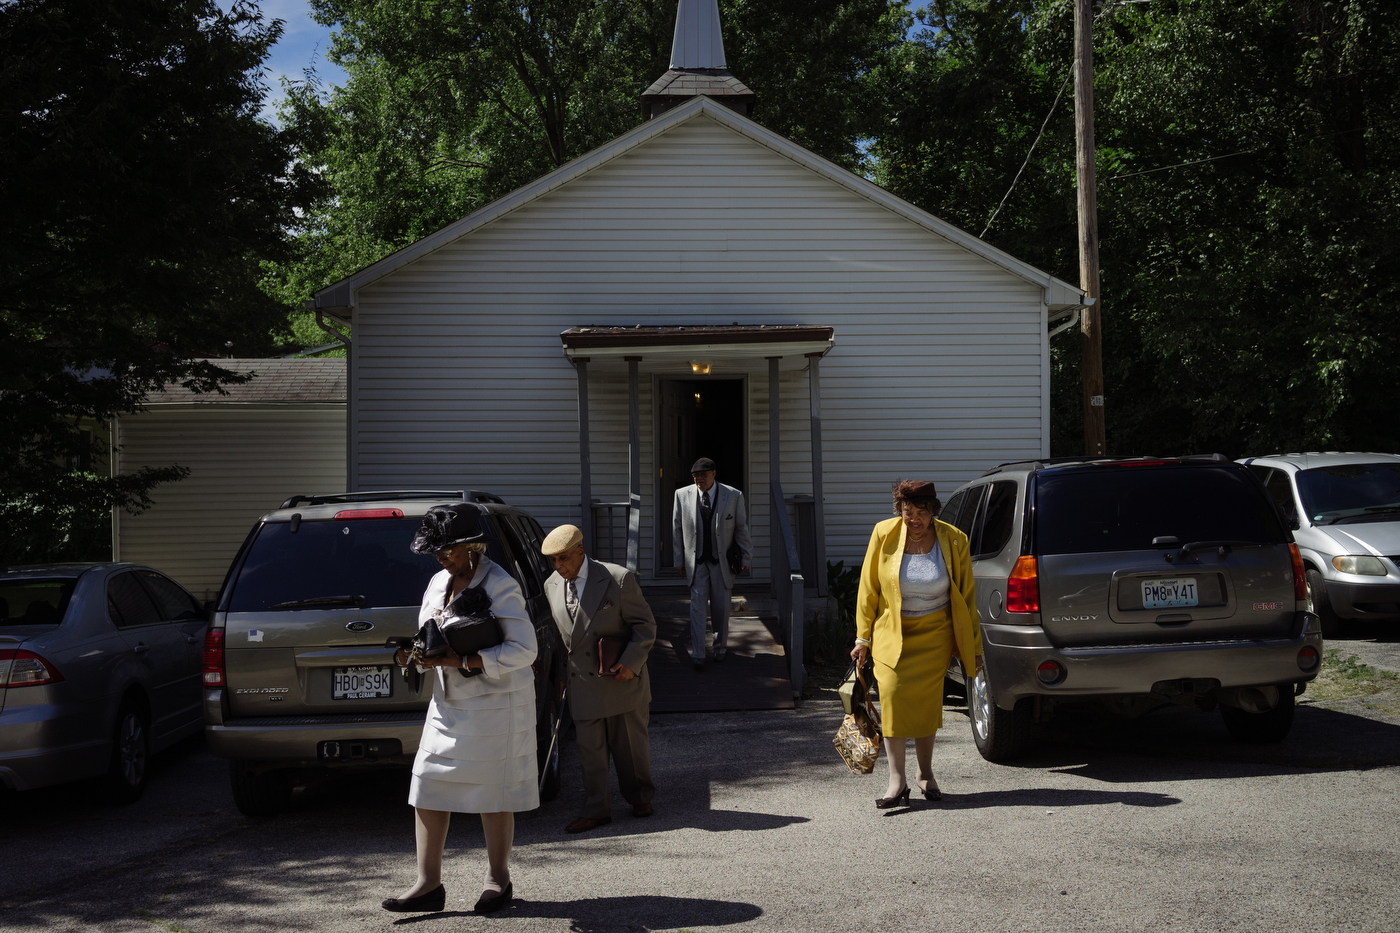 Parishioners leave Christ Love Divine Missionary Baptist Church after Sunday worship. When the congregation bought the building 35 years ago from the original owners, a white church, they marched down the street to celebrate their first service; someone in the (then predominately white) neighborhood called the police in confusion.